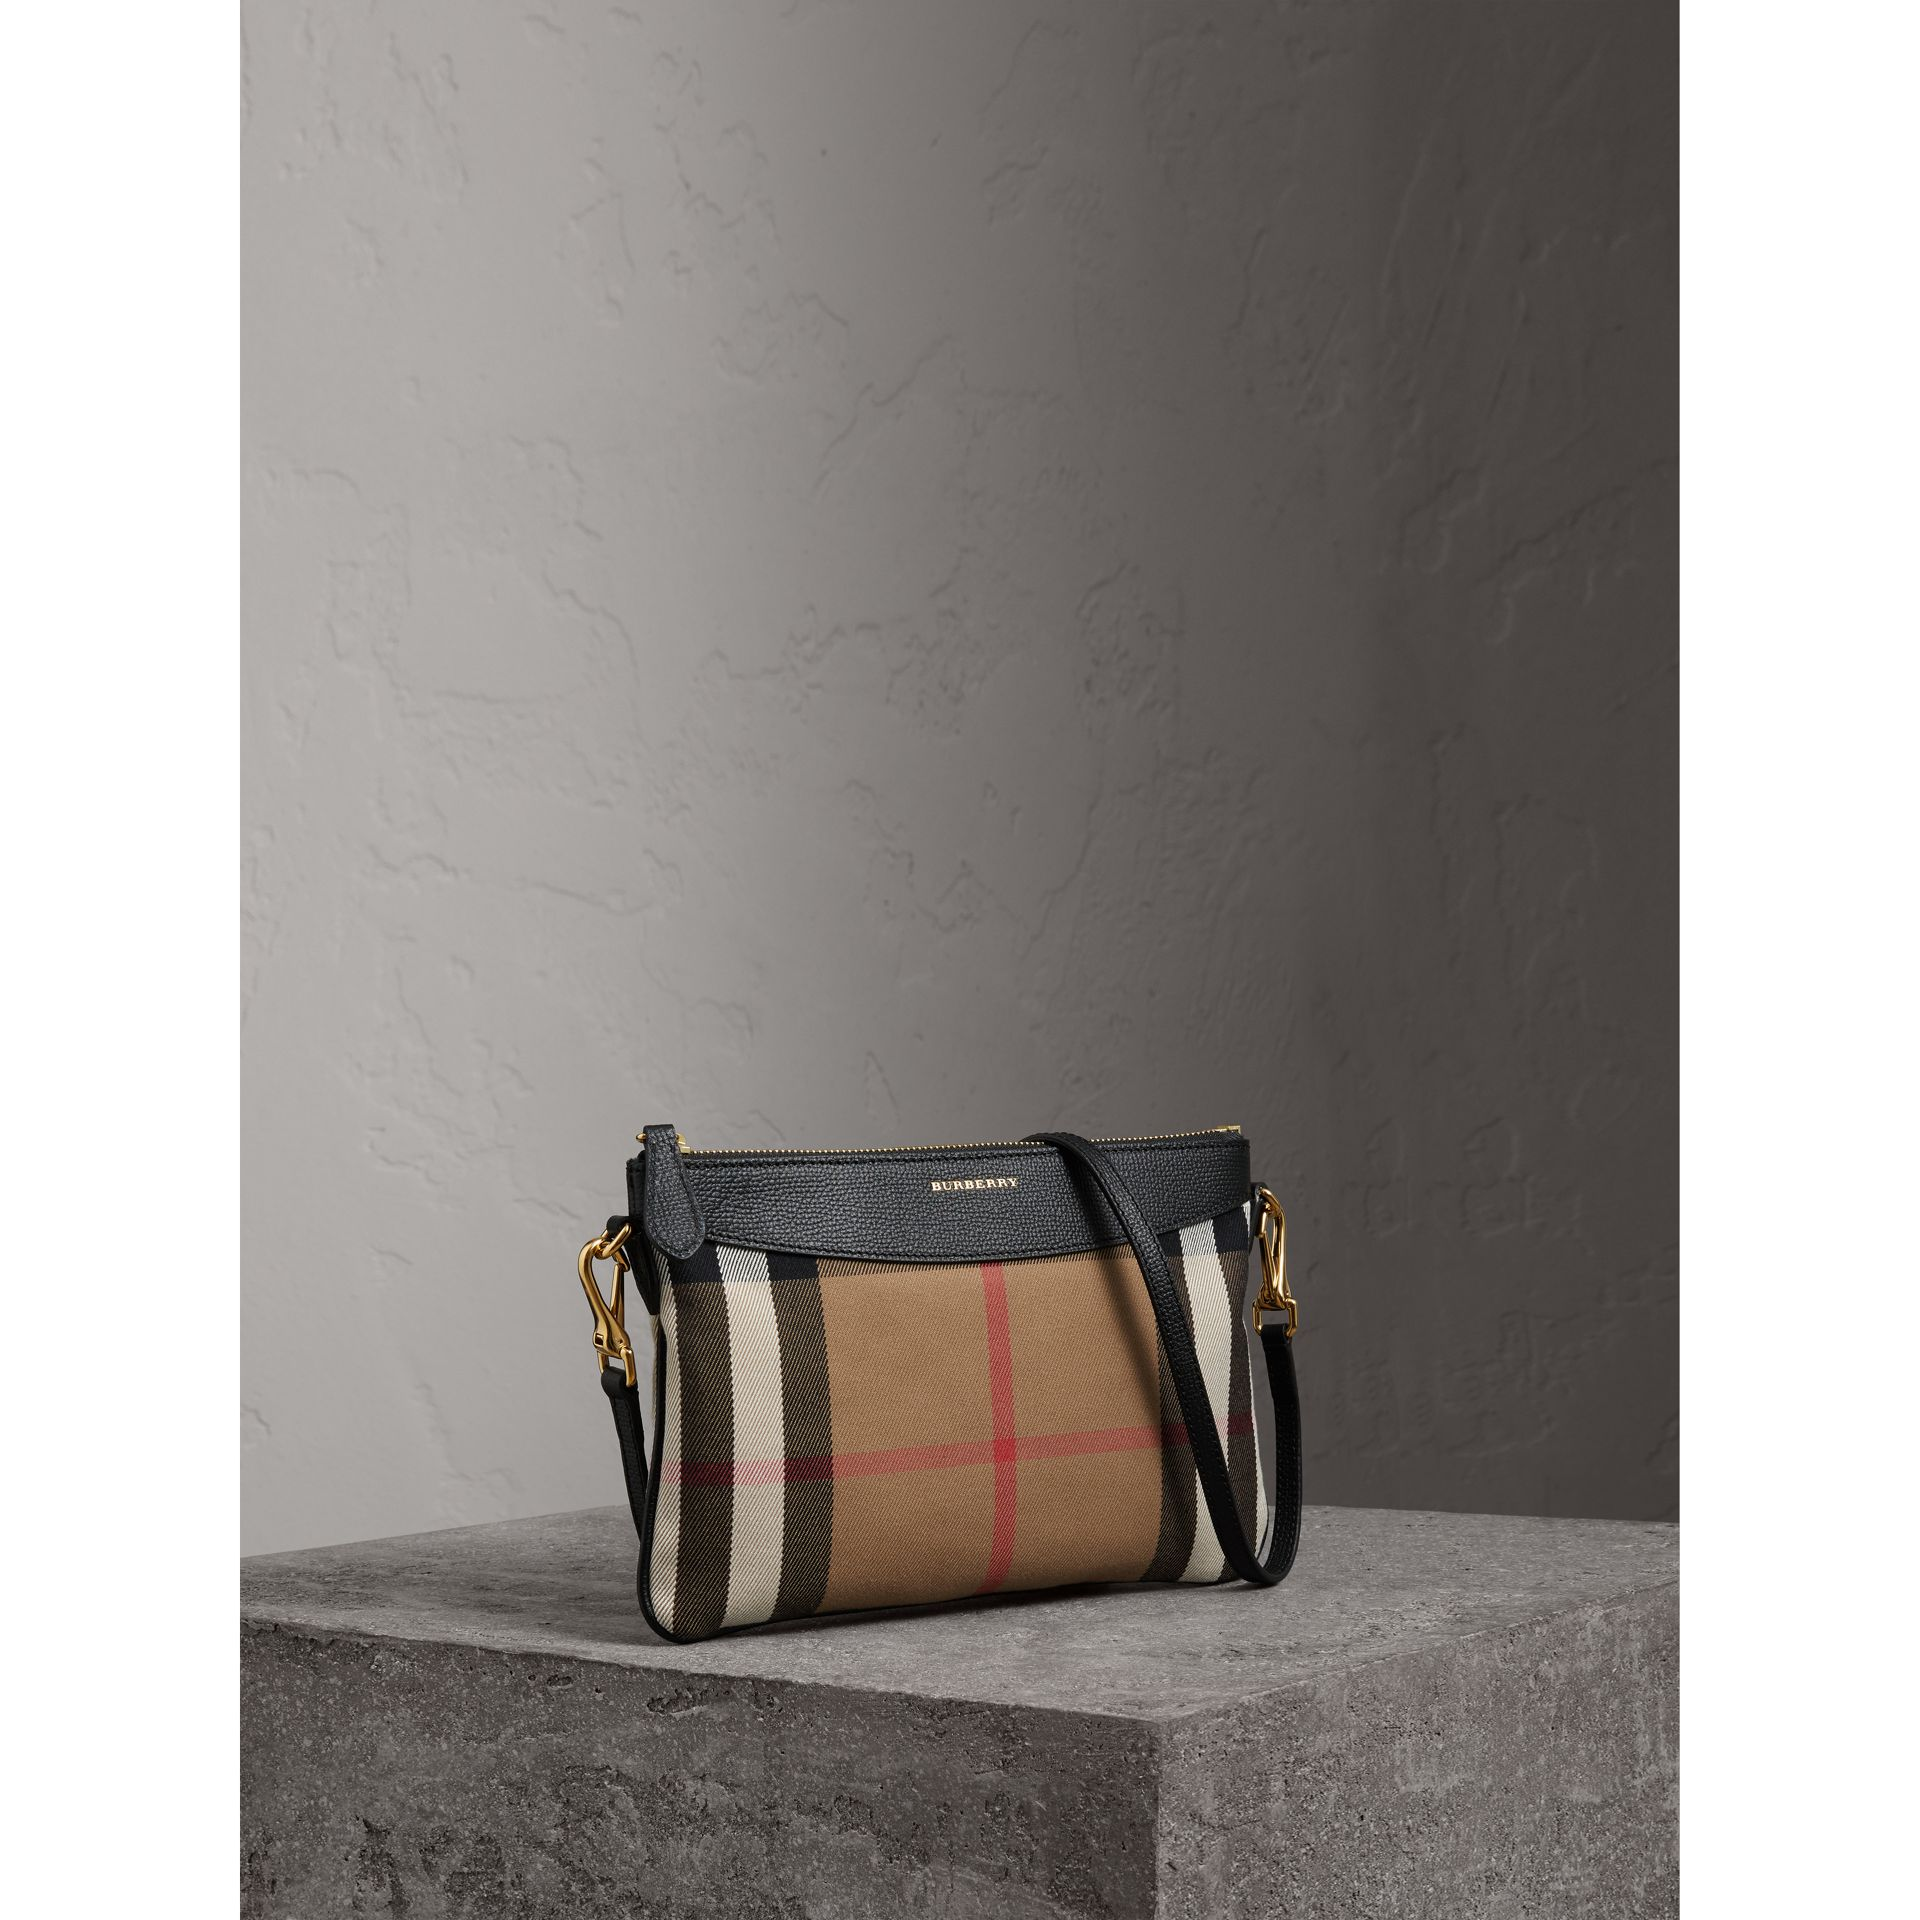 House Check and Leather Clutch Bag in Black - Women | Burberry United Kingdom - gallery image 6